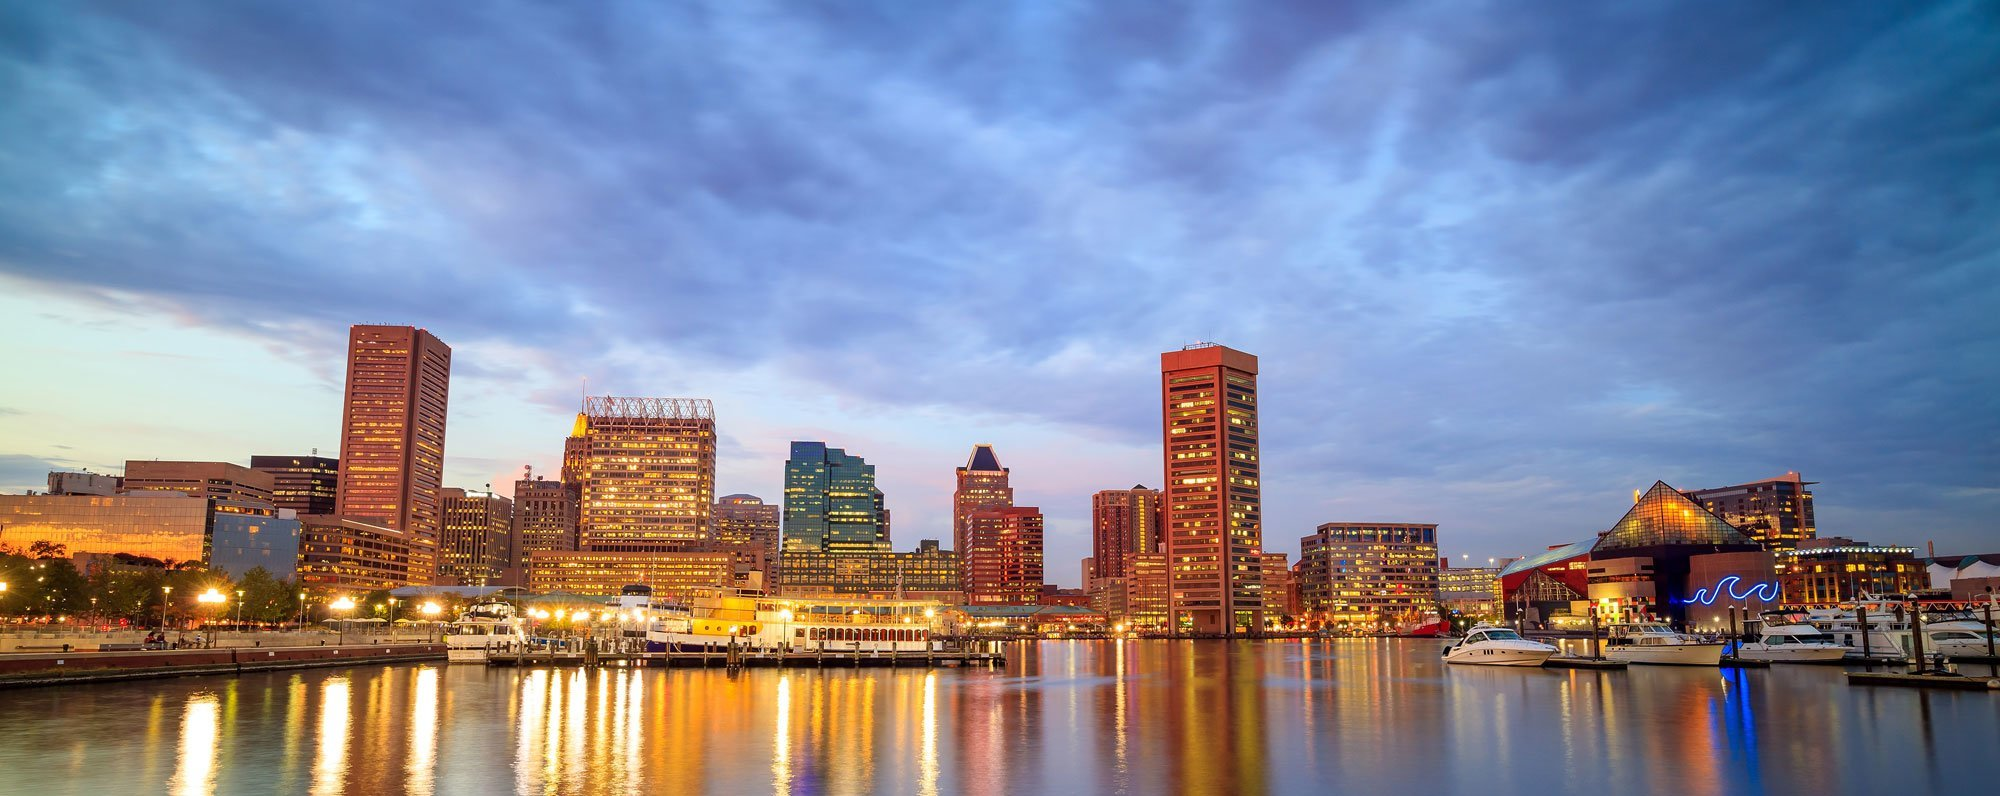 The Greater Baltimore Committee | Greater Baltimore Regional ...